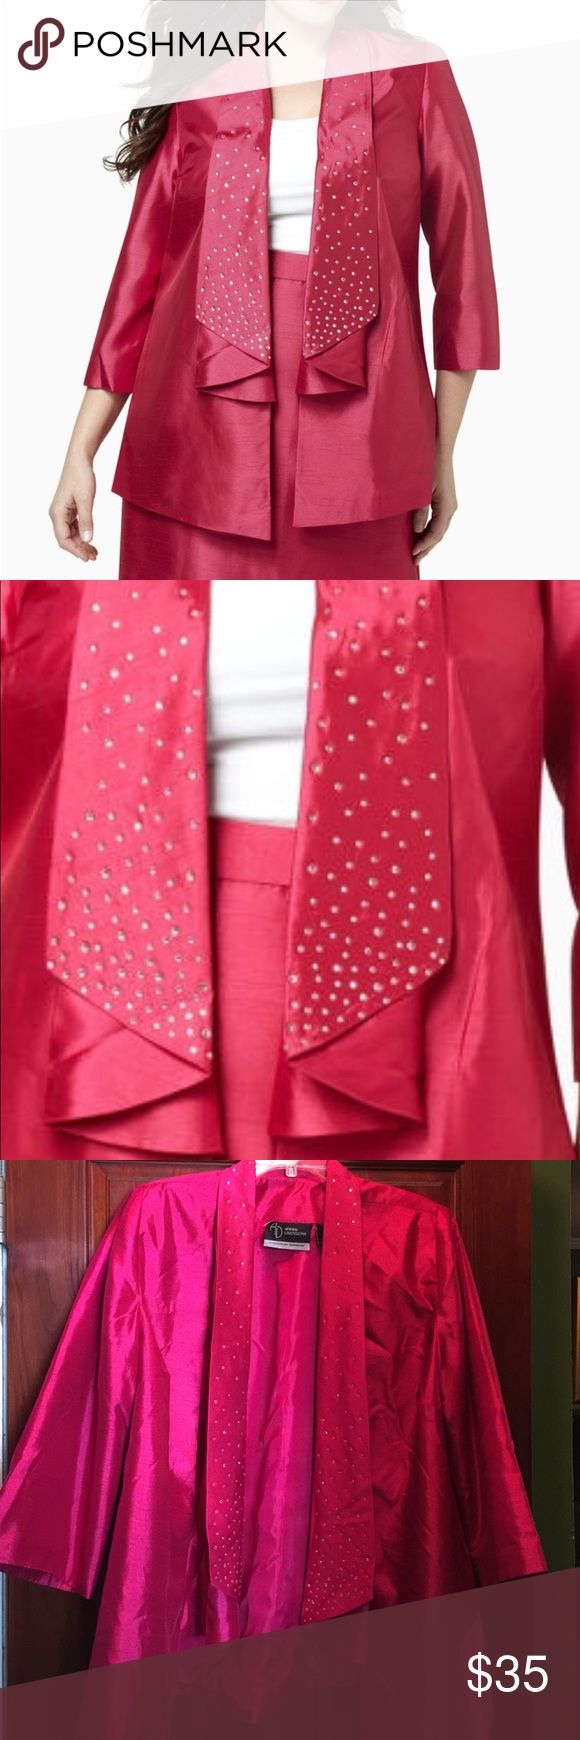 """NEW Catherines Plus Size Silky Shantung Jacket Brand new Catherines Polished Shantung Jacket. Plus Size 0X (14/16W). Sparkling Rhinestones at the folded collar, open-front leads to asymmetrical hem that falls to a point. Color is labeled as Bright Rose, I would describe it as fuschia. Bust 46"""", Sleeves 21"""", Length 30"""". Smoke free home Catherines Jackets & Coats Blazers"""